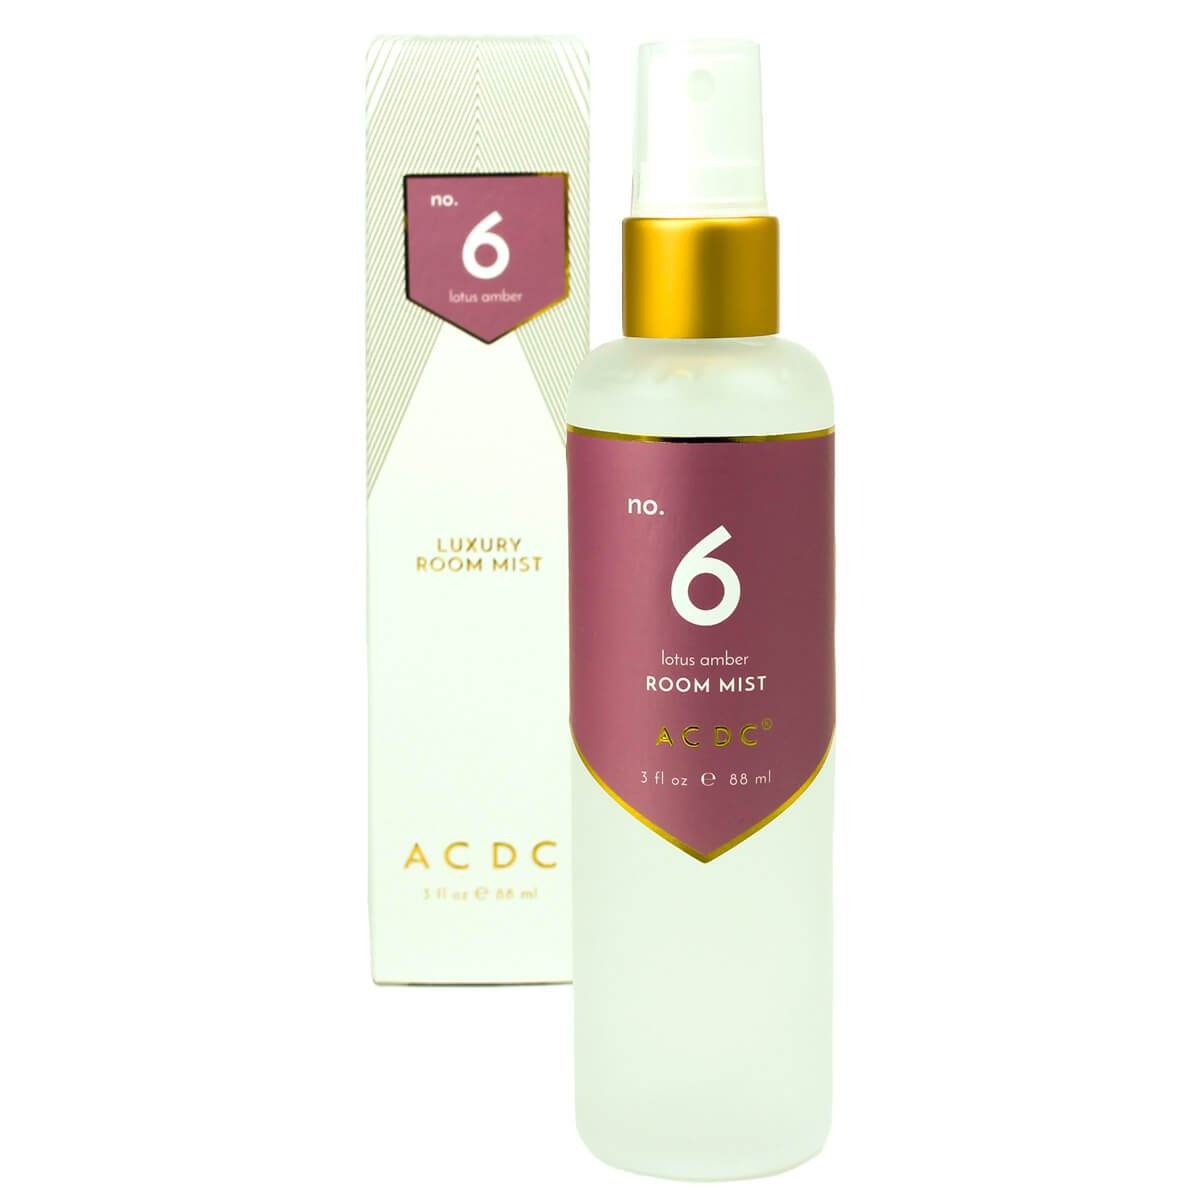 ACDC Room Sprays No. 6 Lotus Amber Room Mist